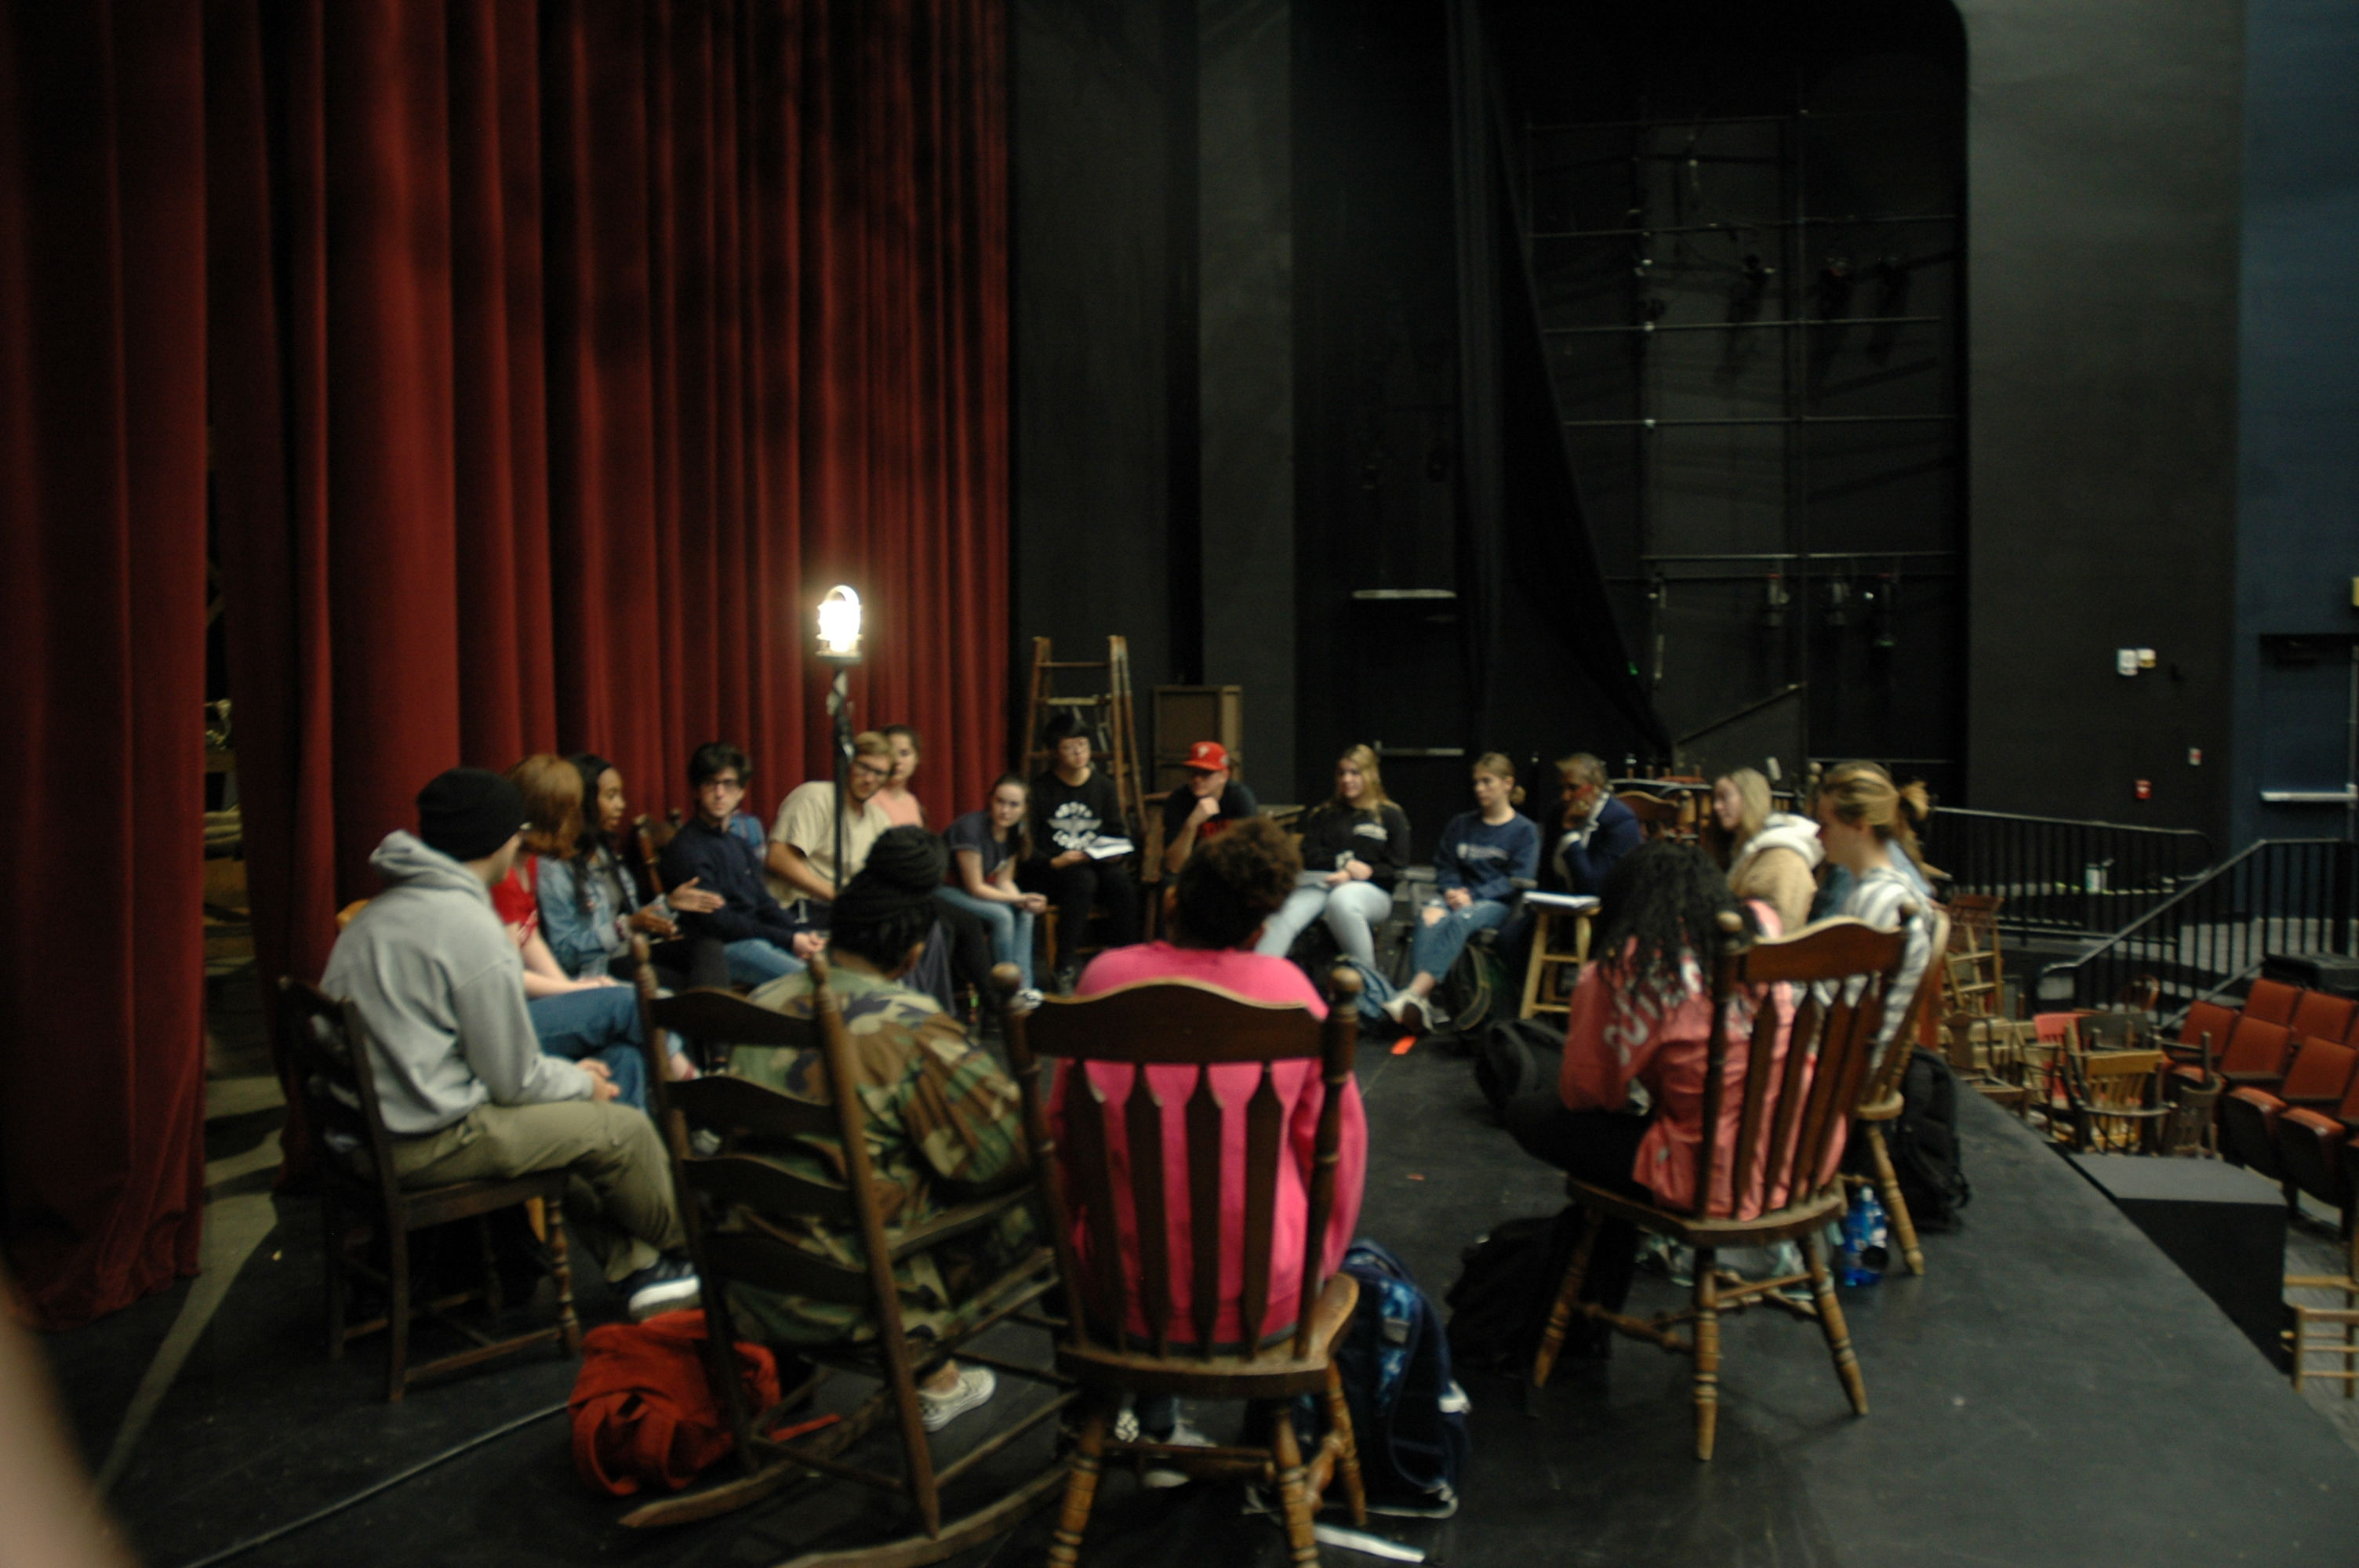 Theater, Film and Media Arts students conduct an onstage class.